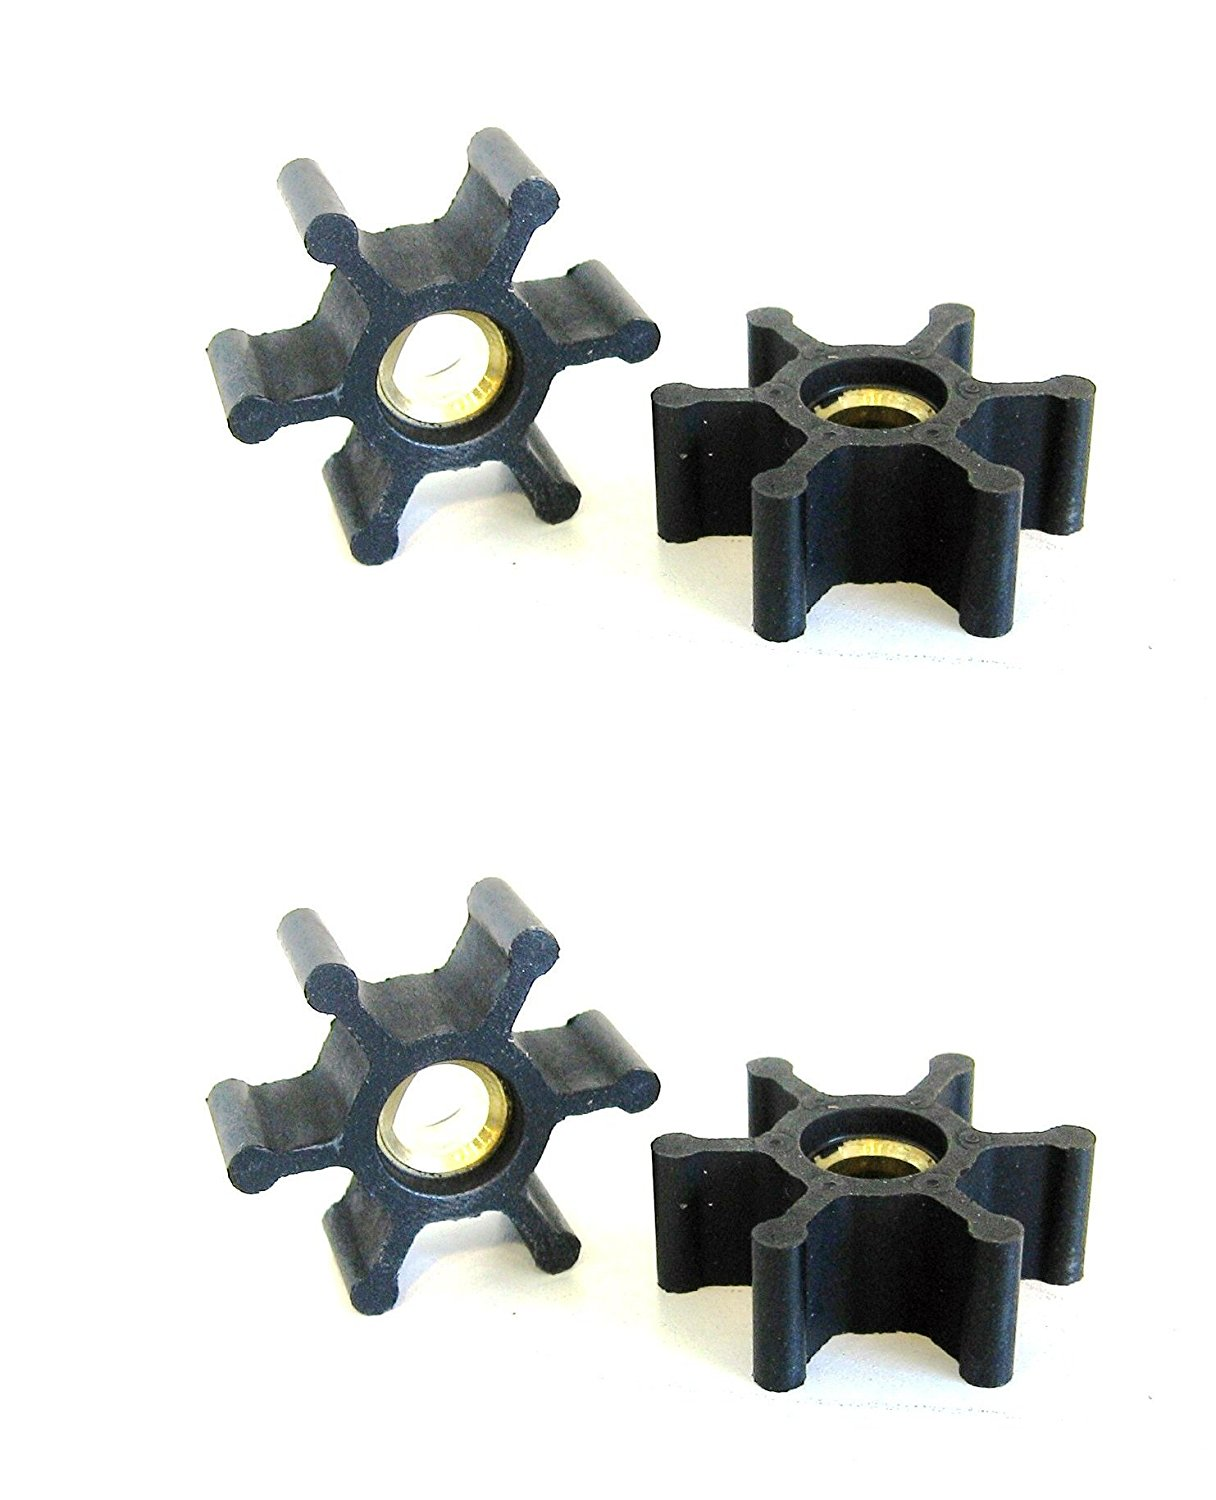 Pondmaster 12575 MD//PM 3-5 Replacement Impellers